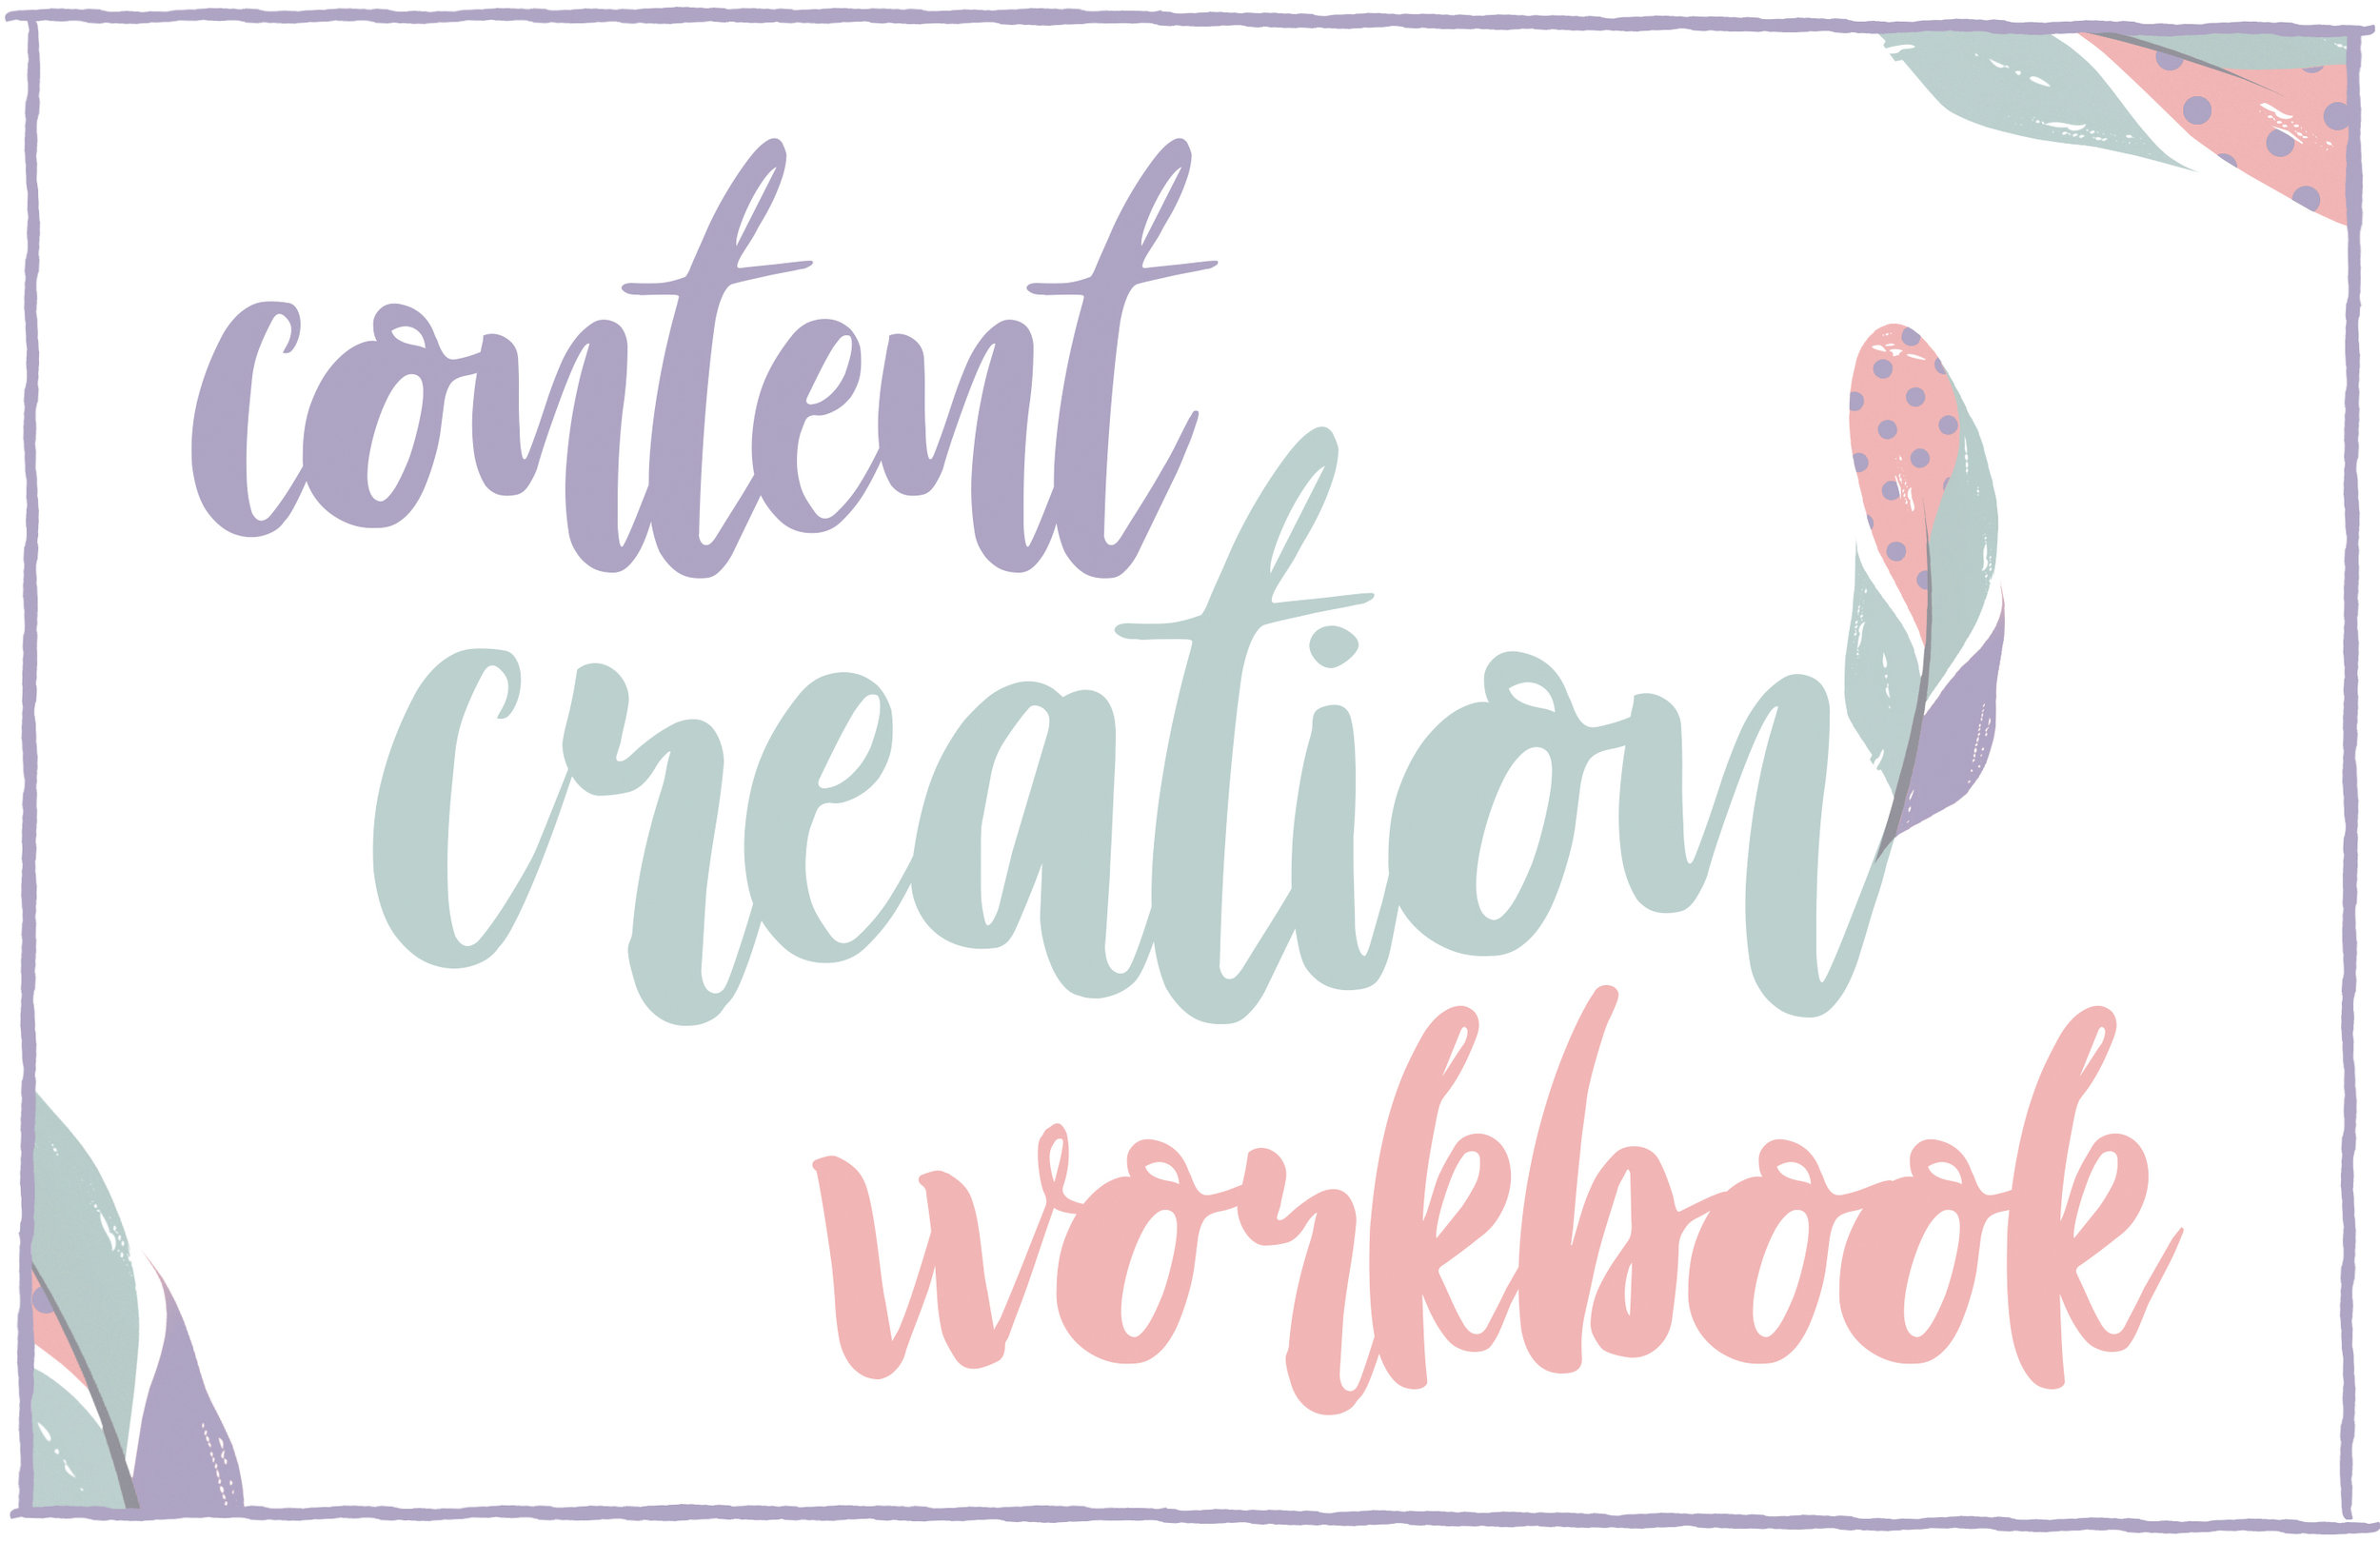 Content Creation Workbook Sales Page Image.jpg